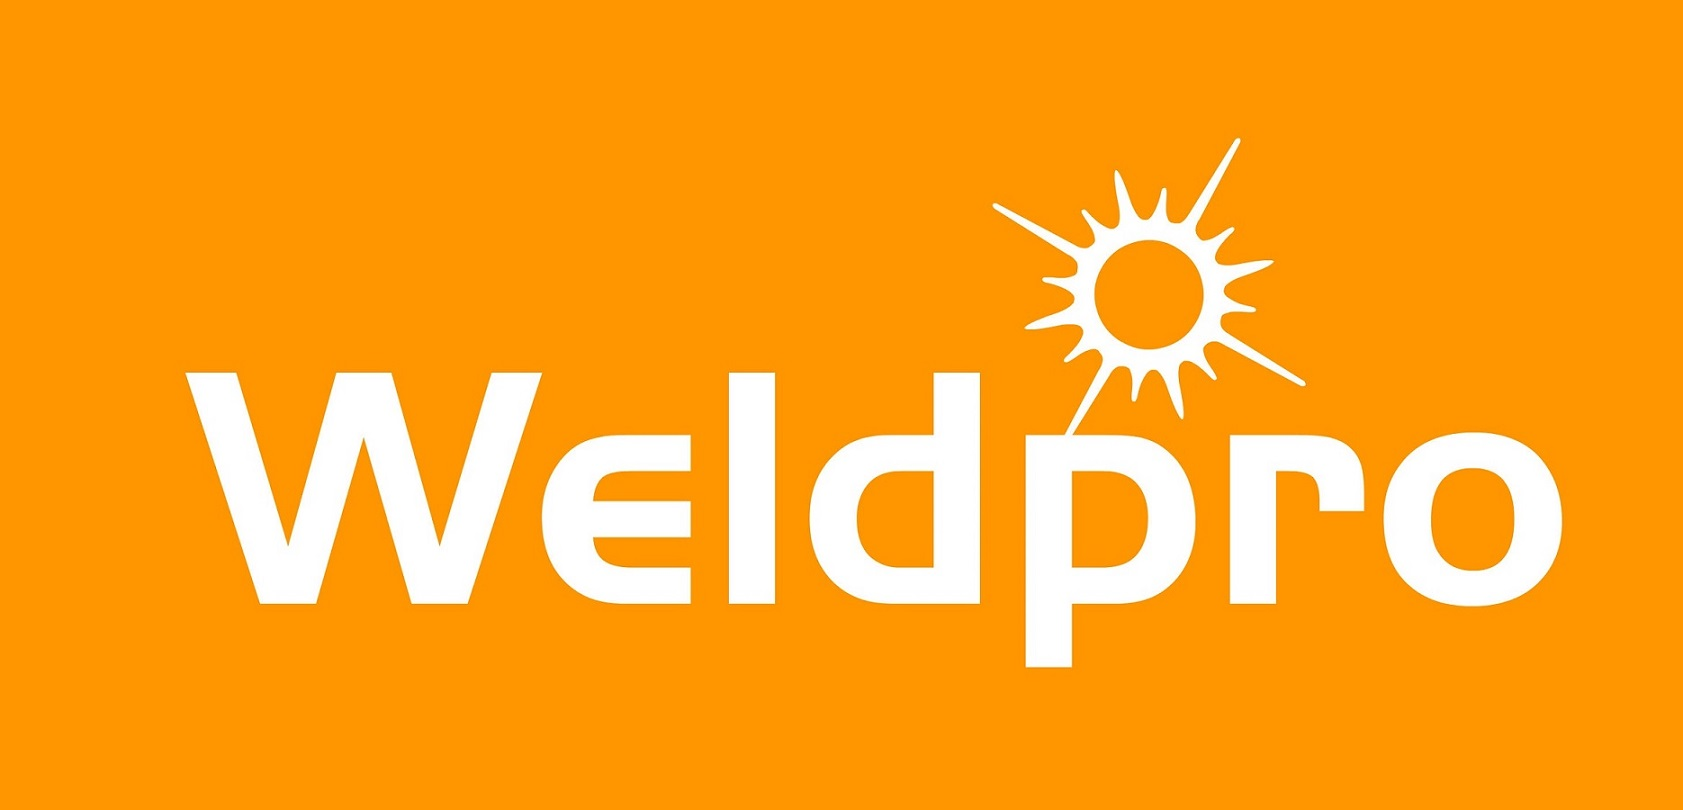 Weldpro Equipment Limited